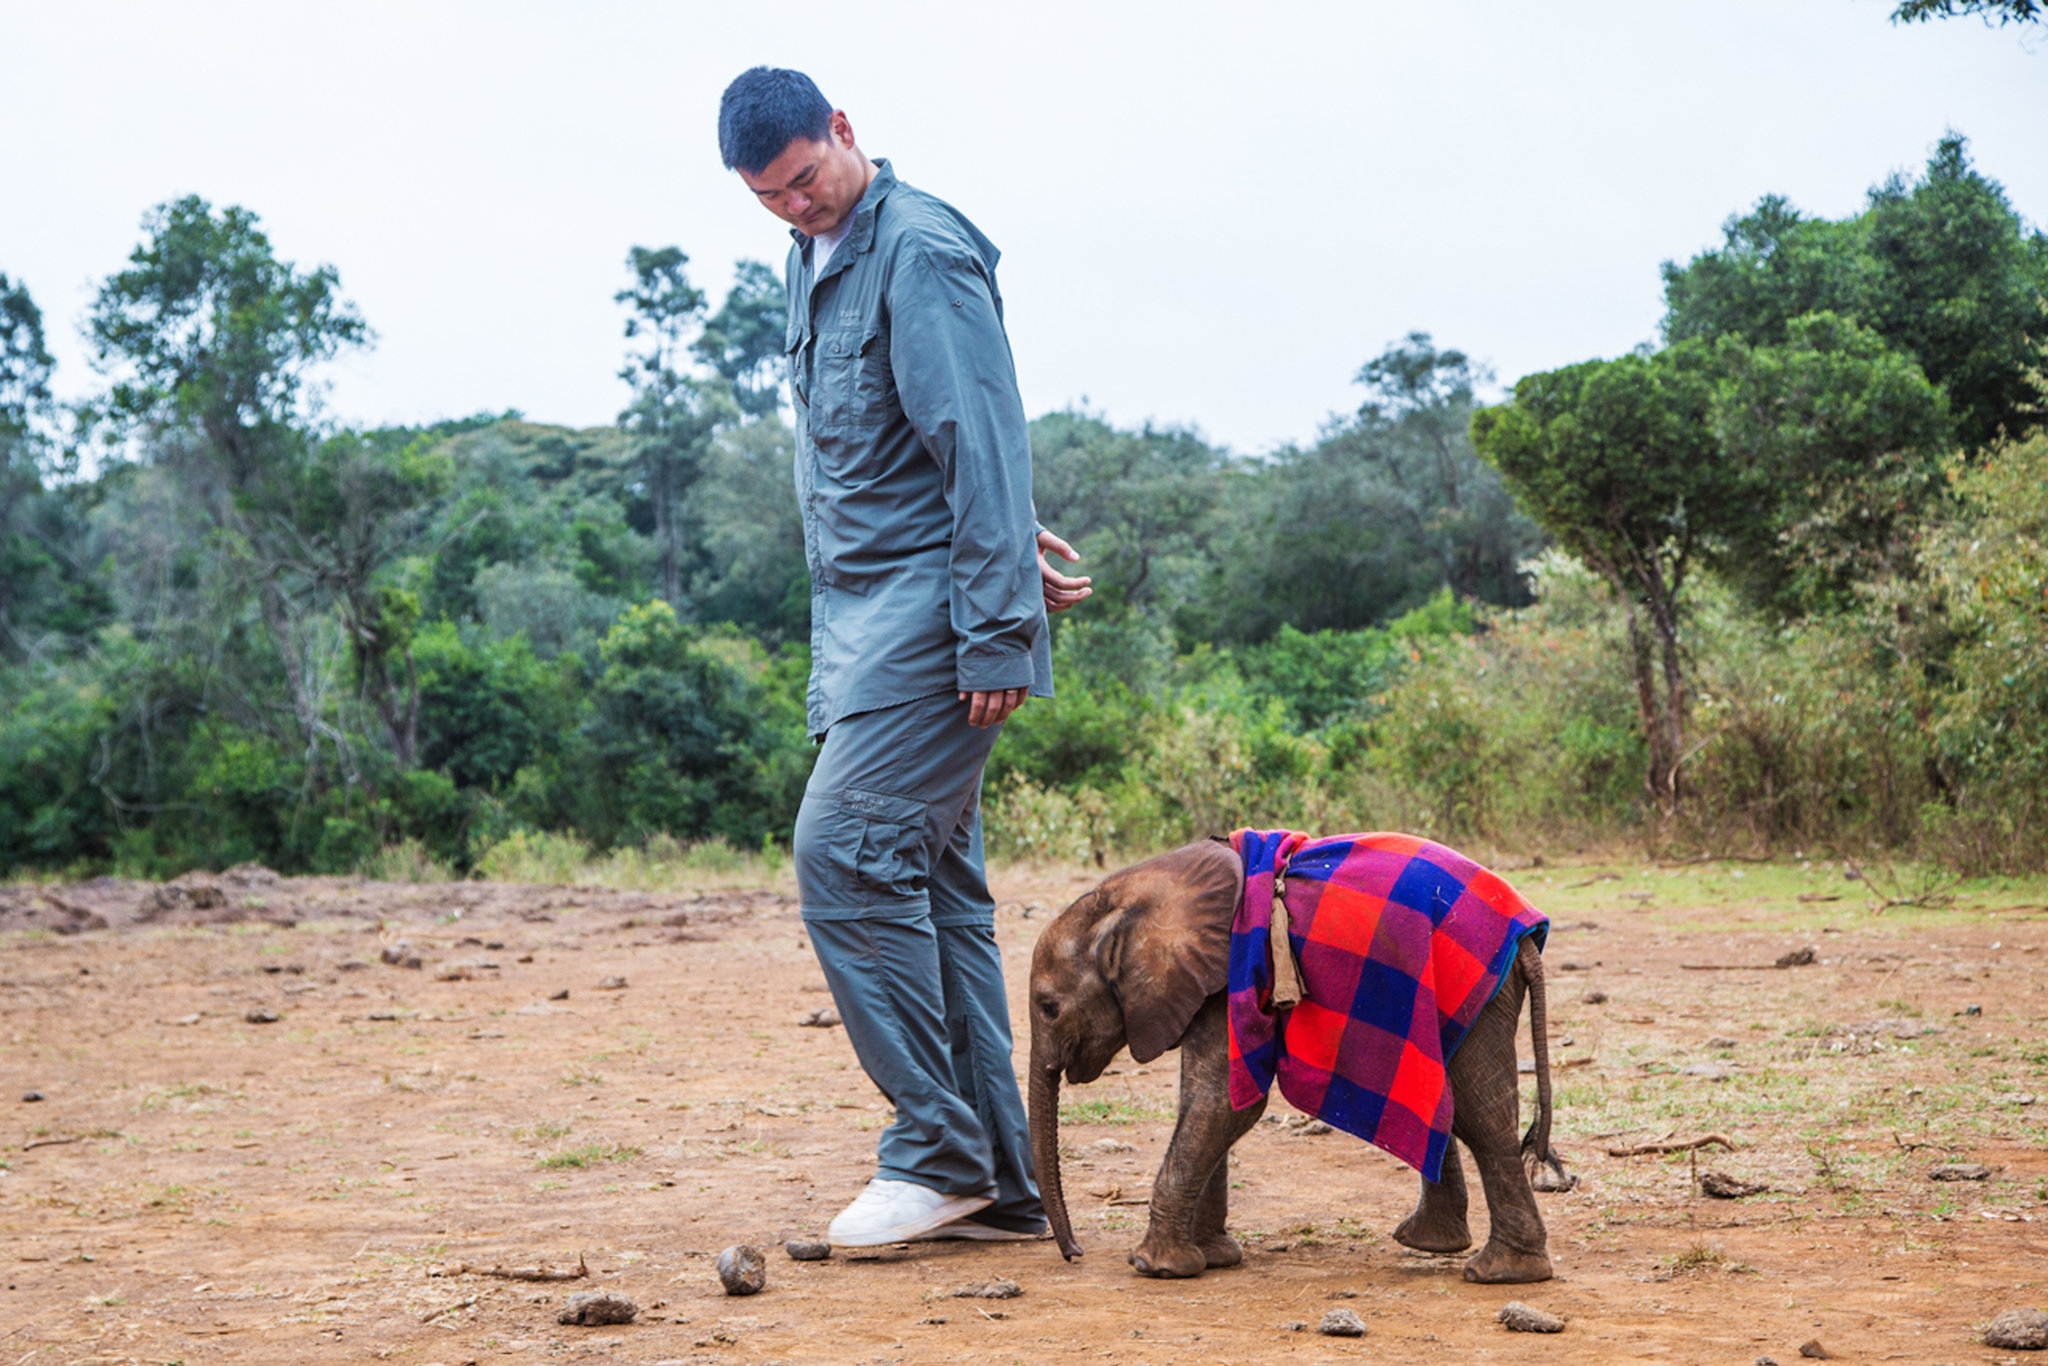 Yao Ming vows to save elephants by ending ivory trade in China